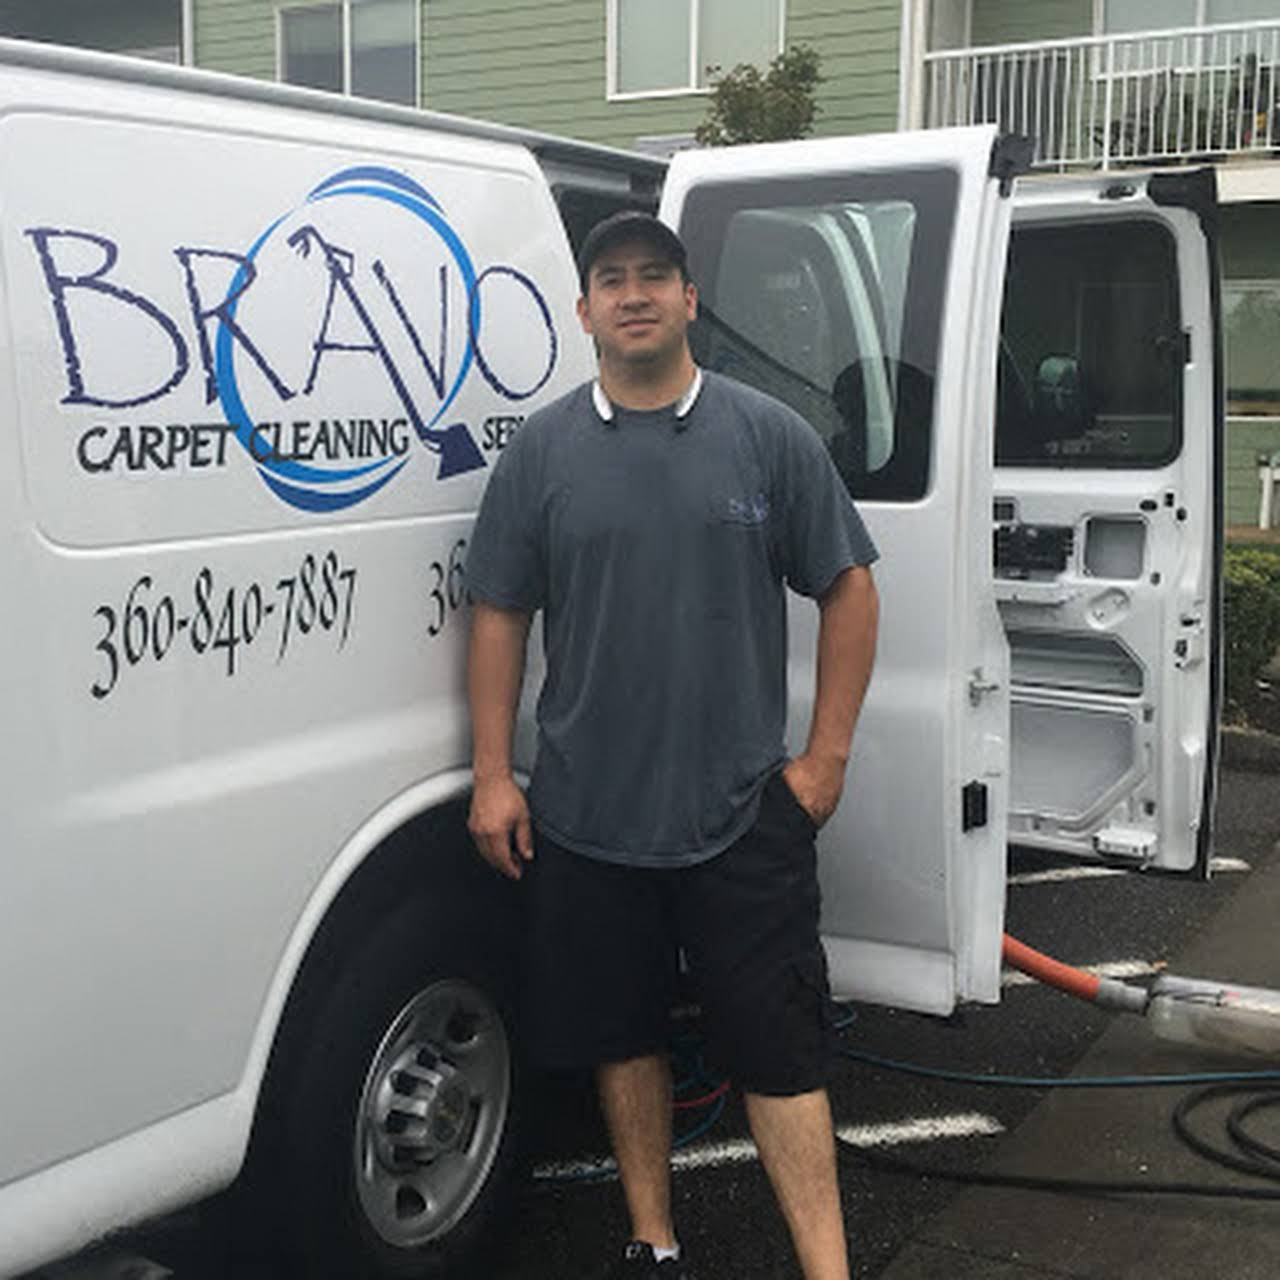 Posted On May 18 2018 At Bravo Carpet Cleaning Services